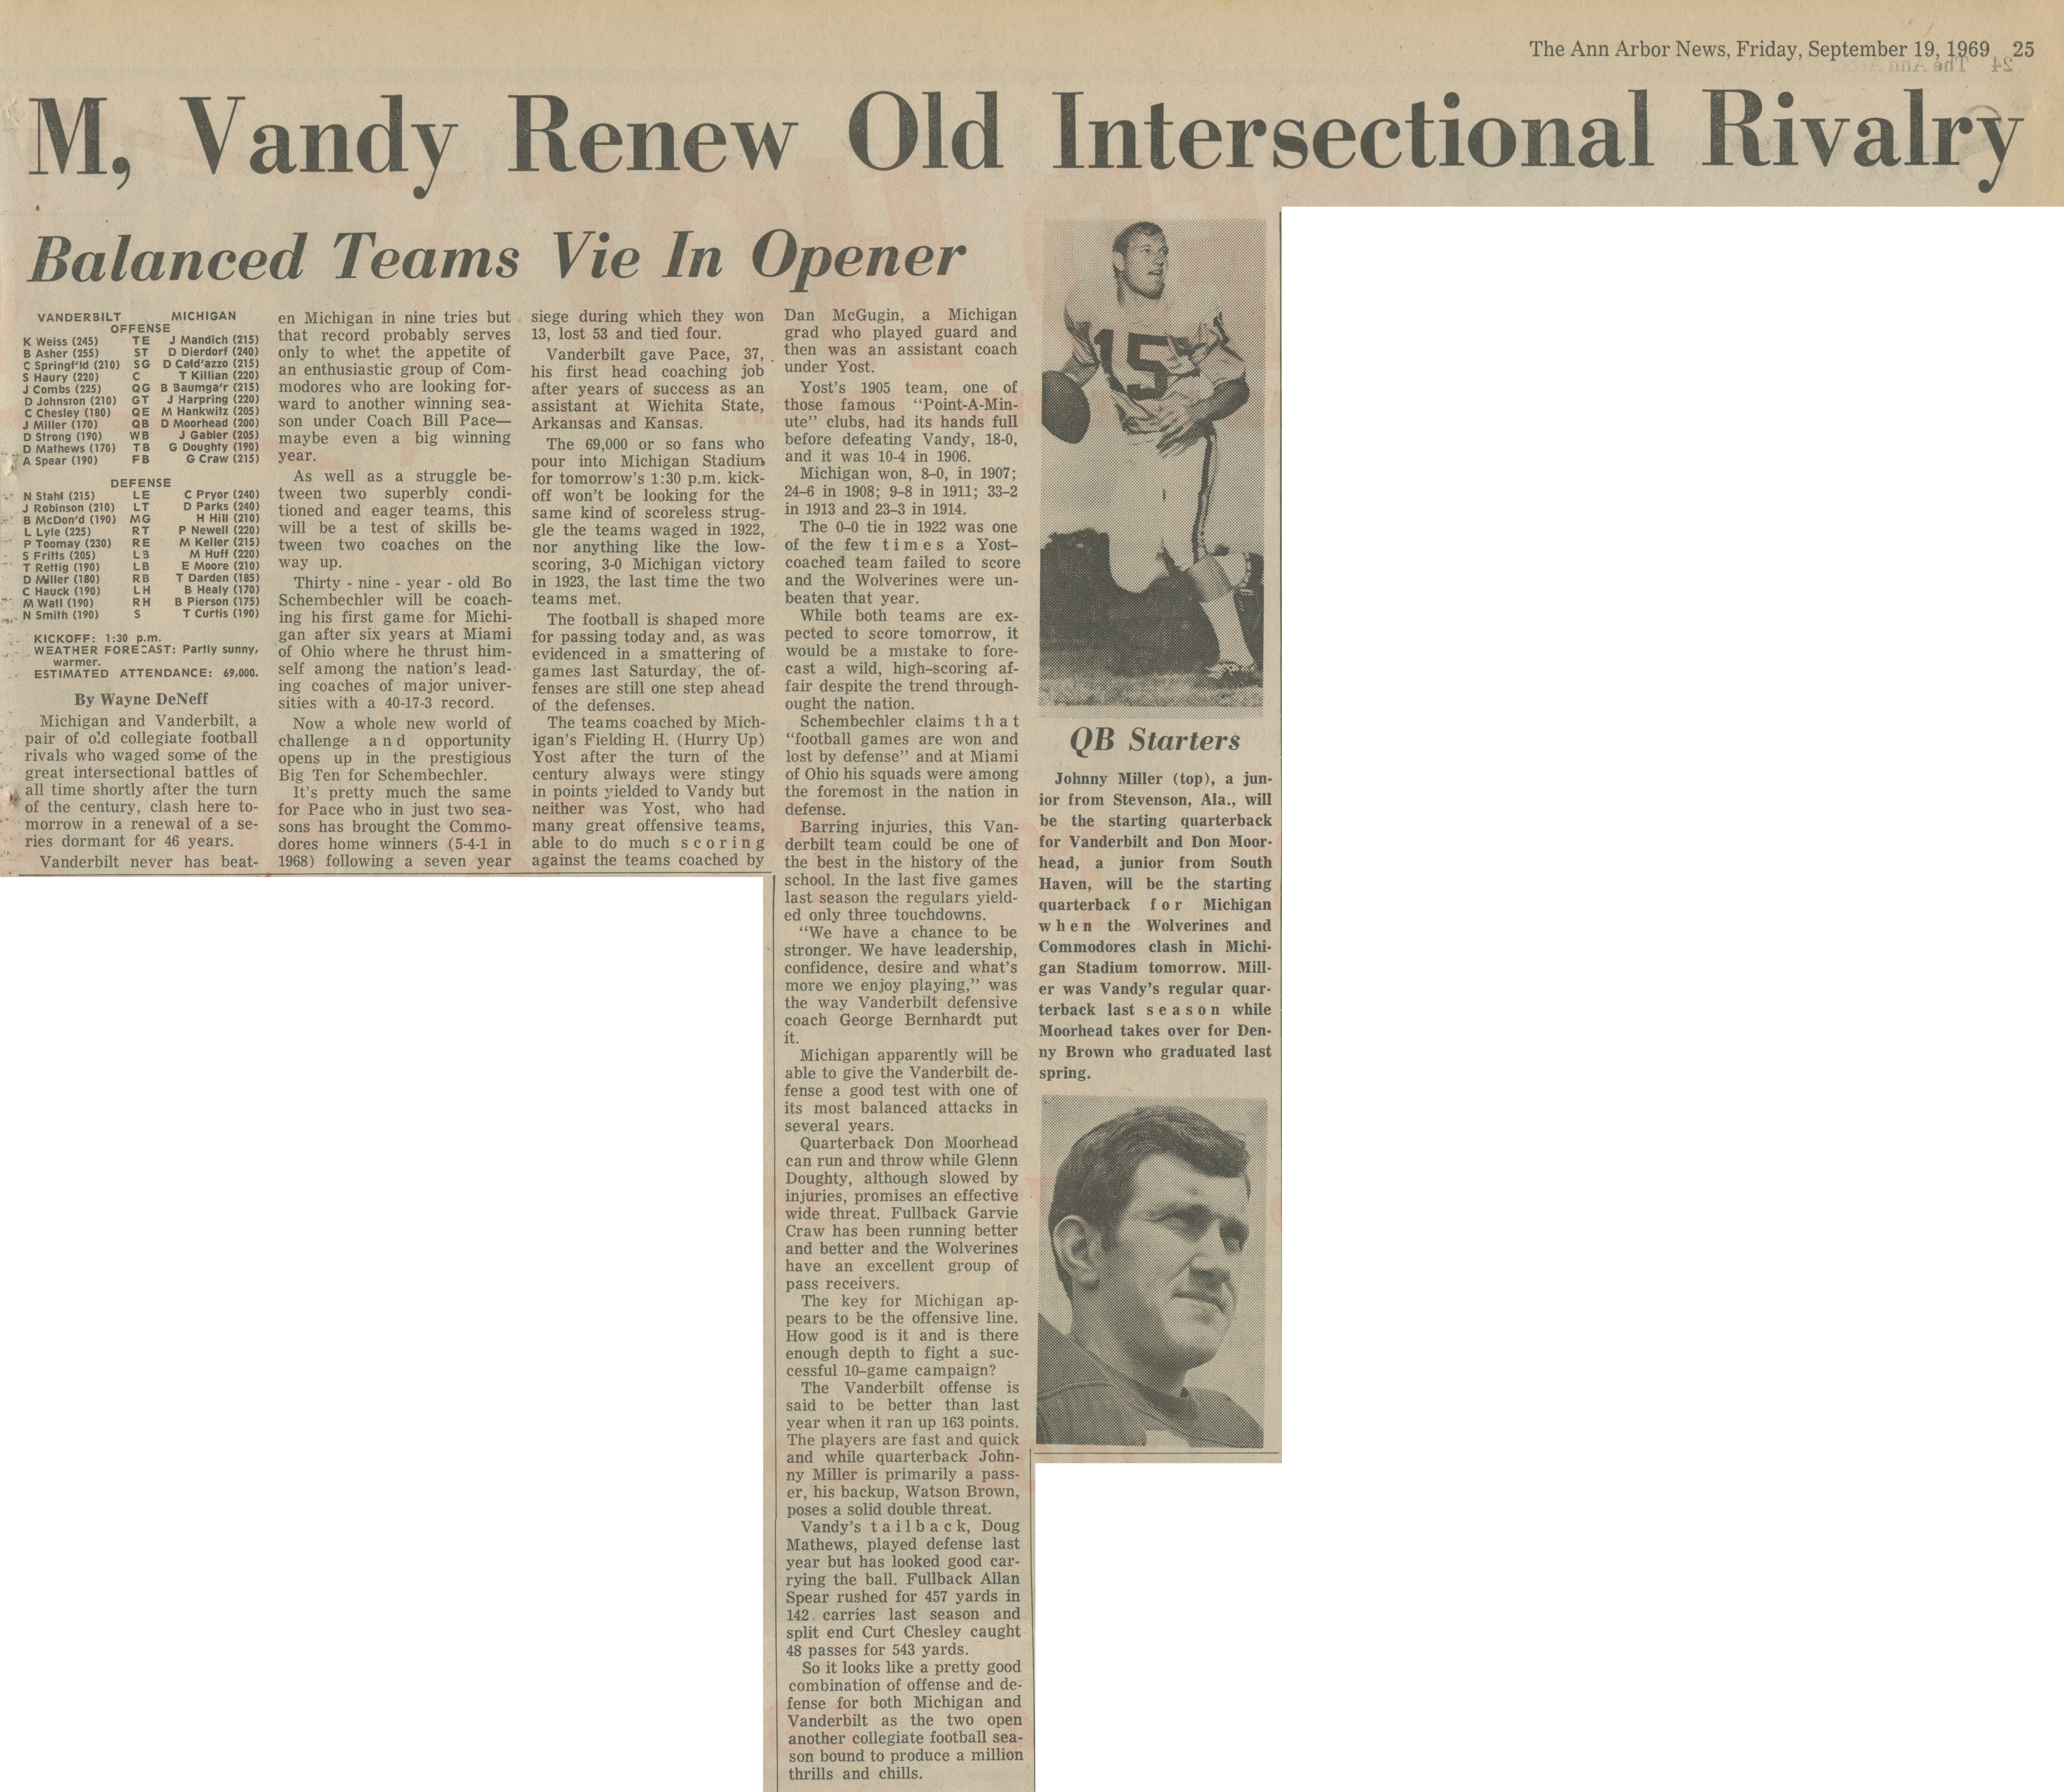 M, Vandy Renew Old Intersectional Rivalry image